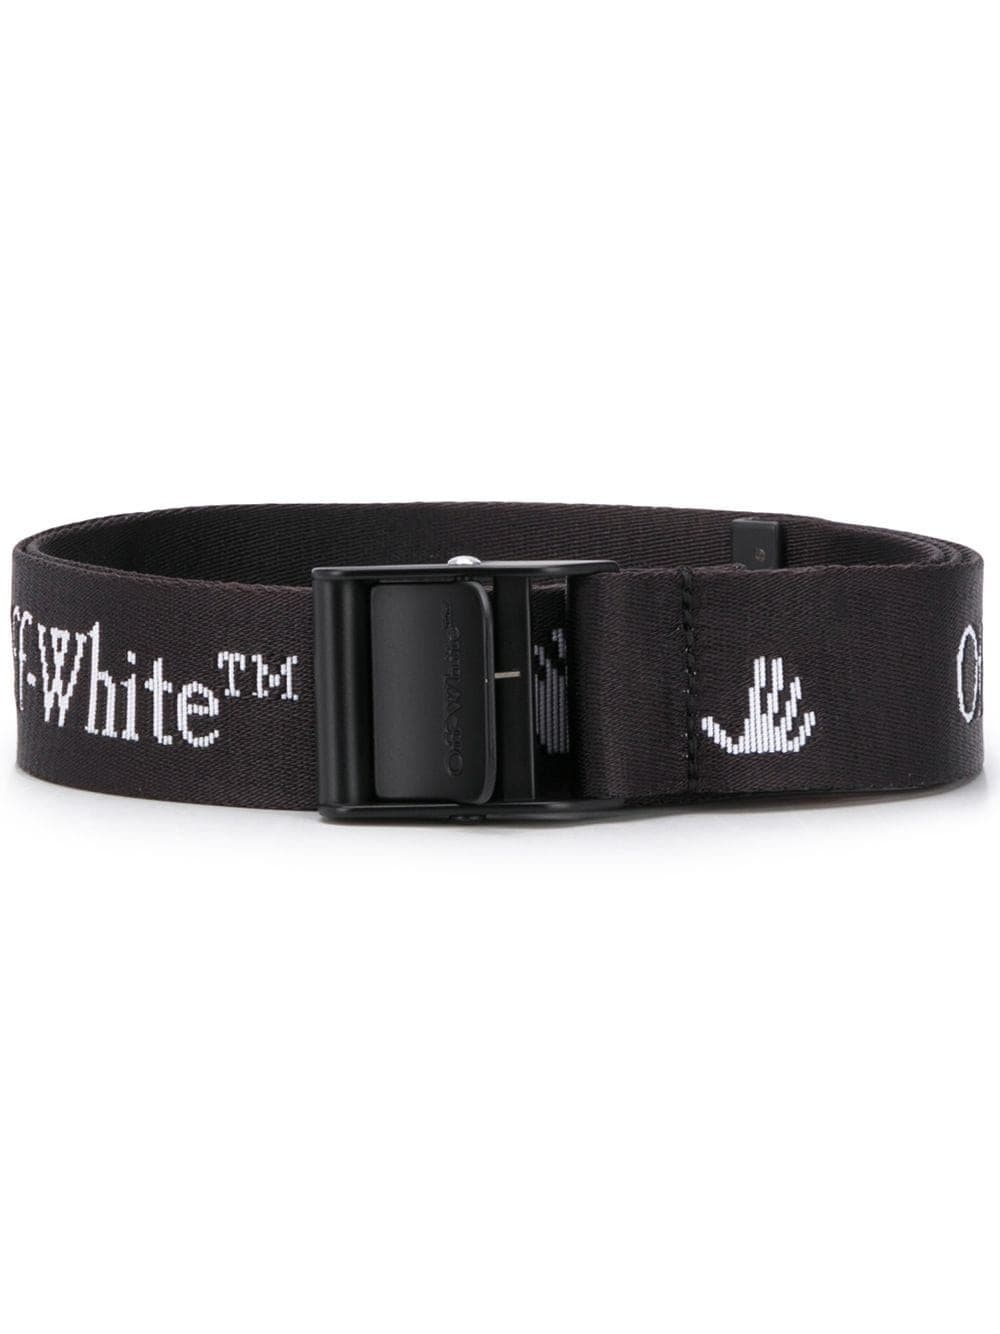 OFF-WHITE new logo industrial black/white - Maison De Fashion